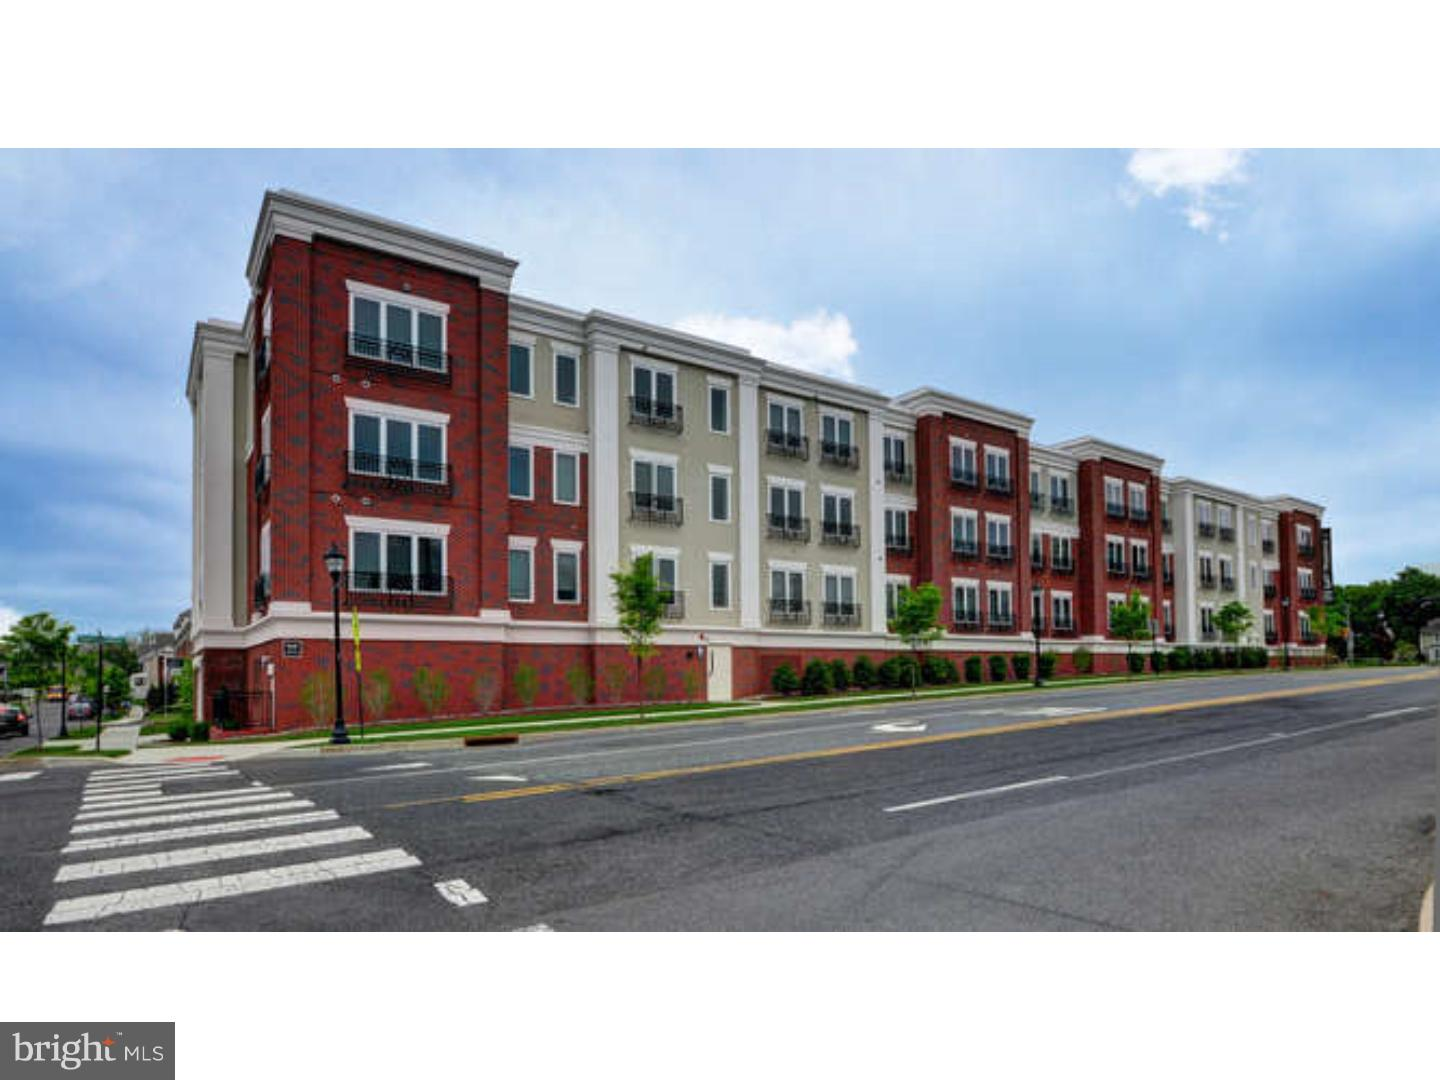 Property for Sale at 2 N COMMERCE SQ #302 Robbinsville, New Jersey 08691 United States